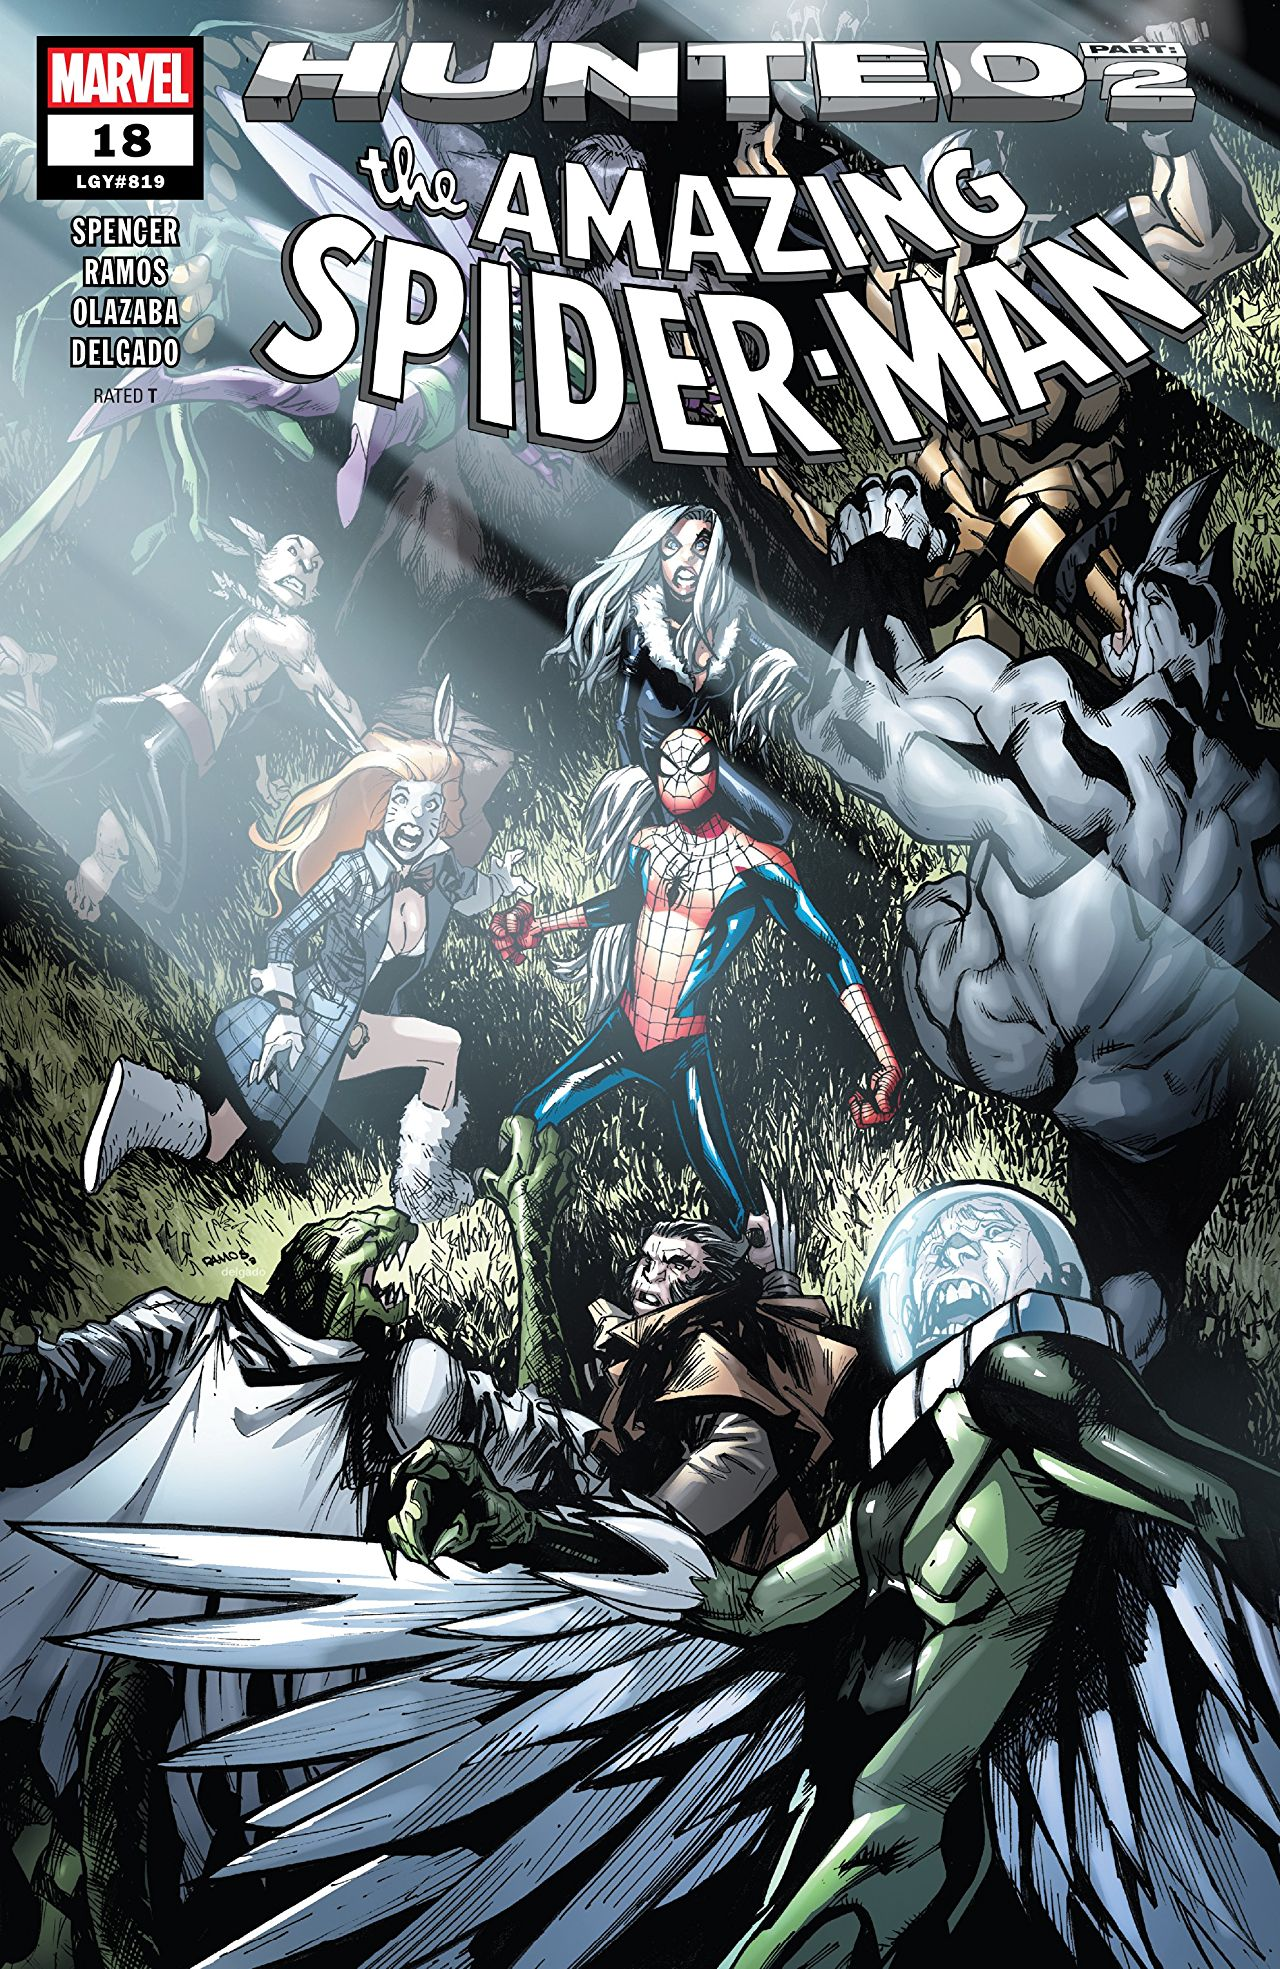 The Amazing Spider-Man 18 - HUNTED PART 2